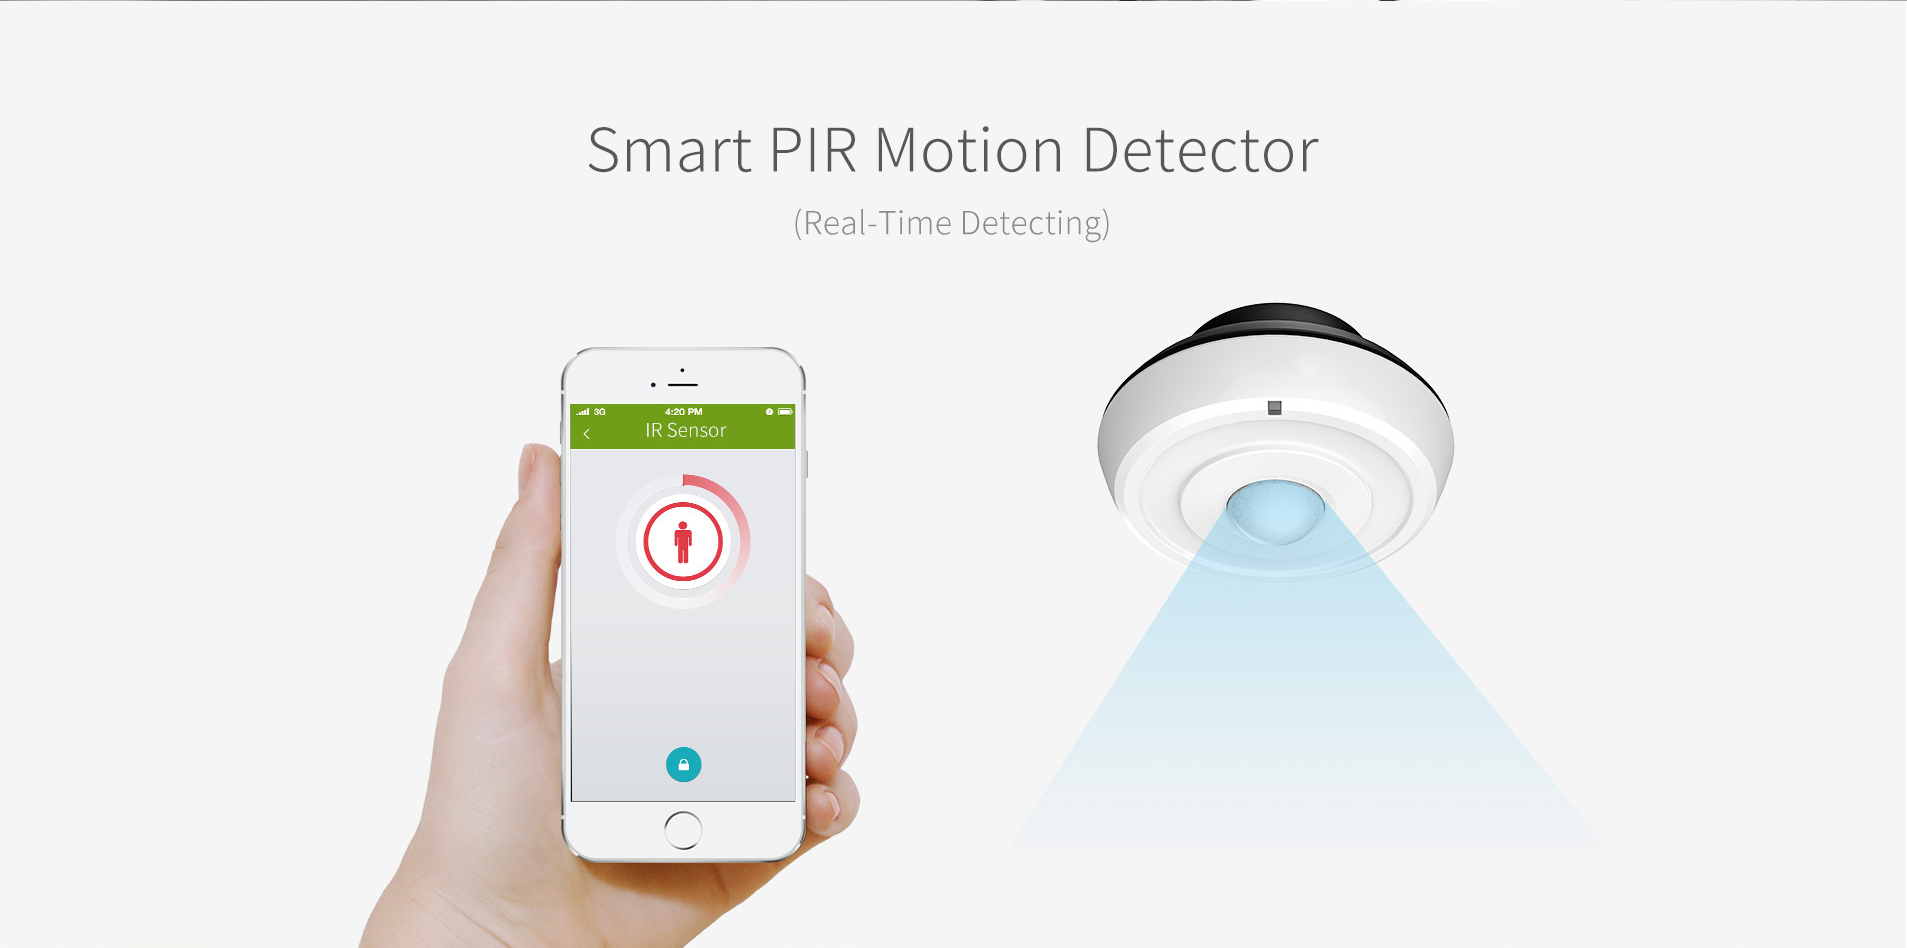 Smart motion detector and smartphone app